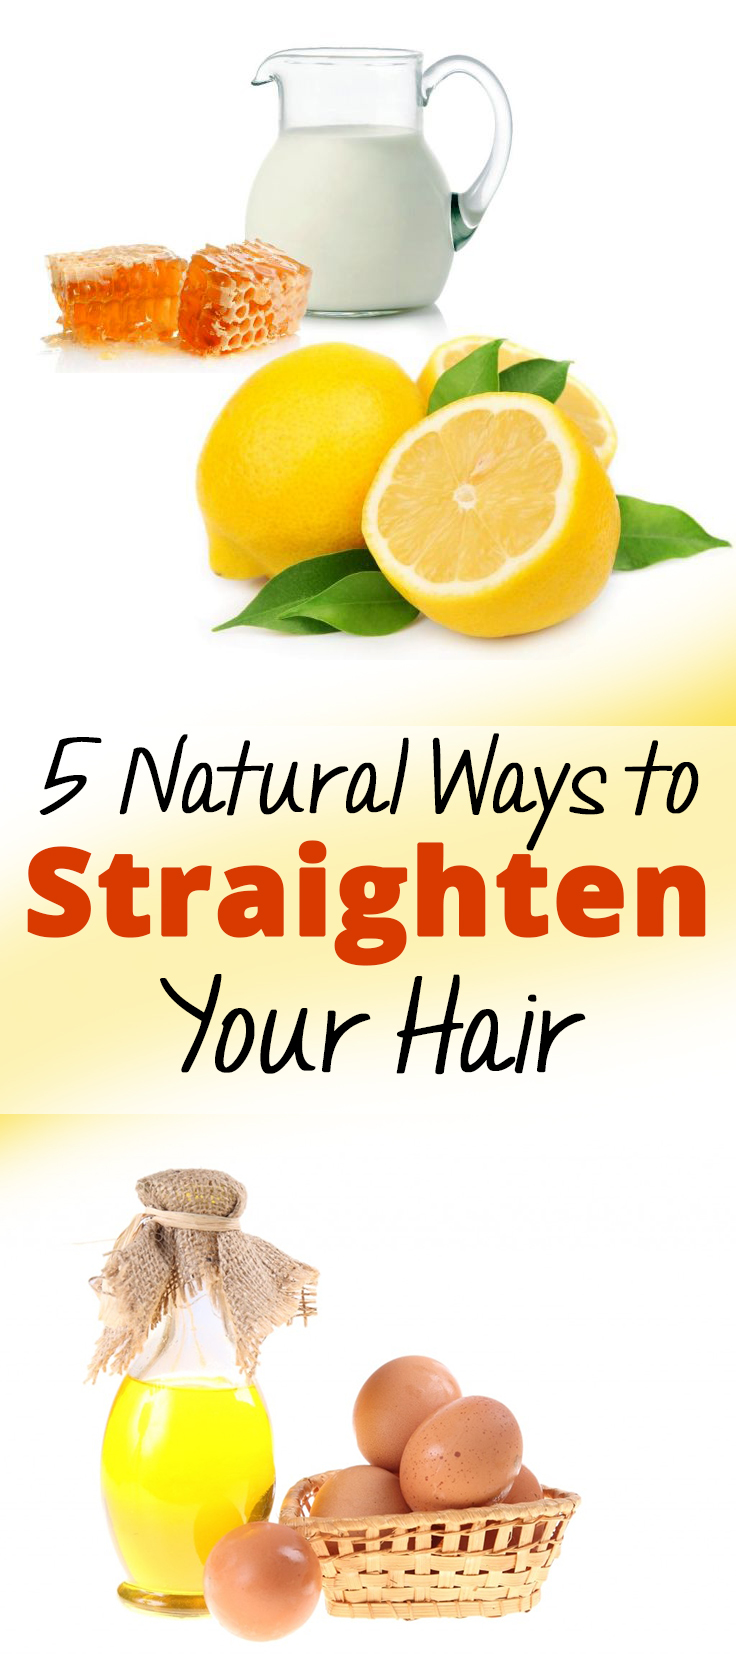 5 Natural Ways to Straighten Your Hair